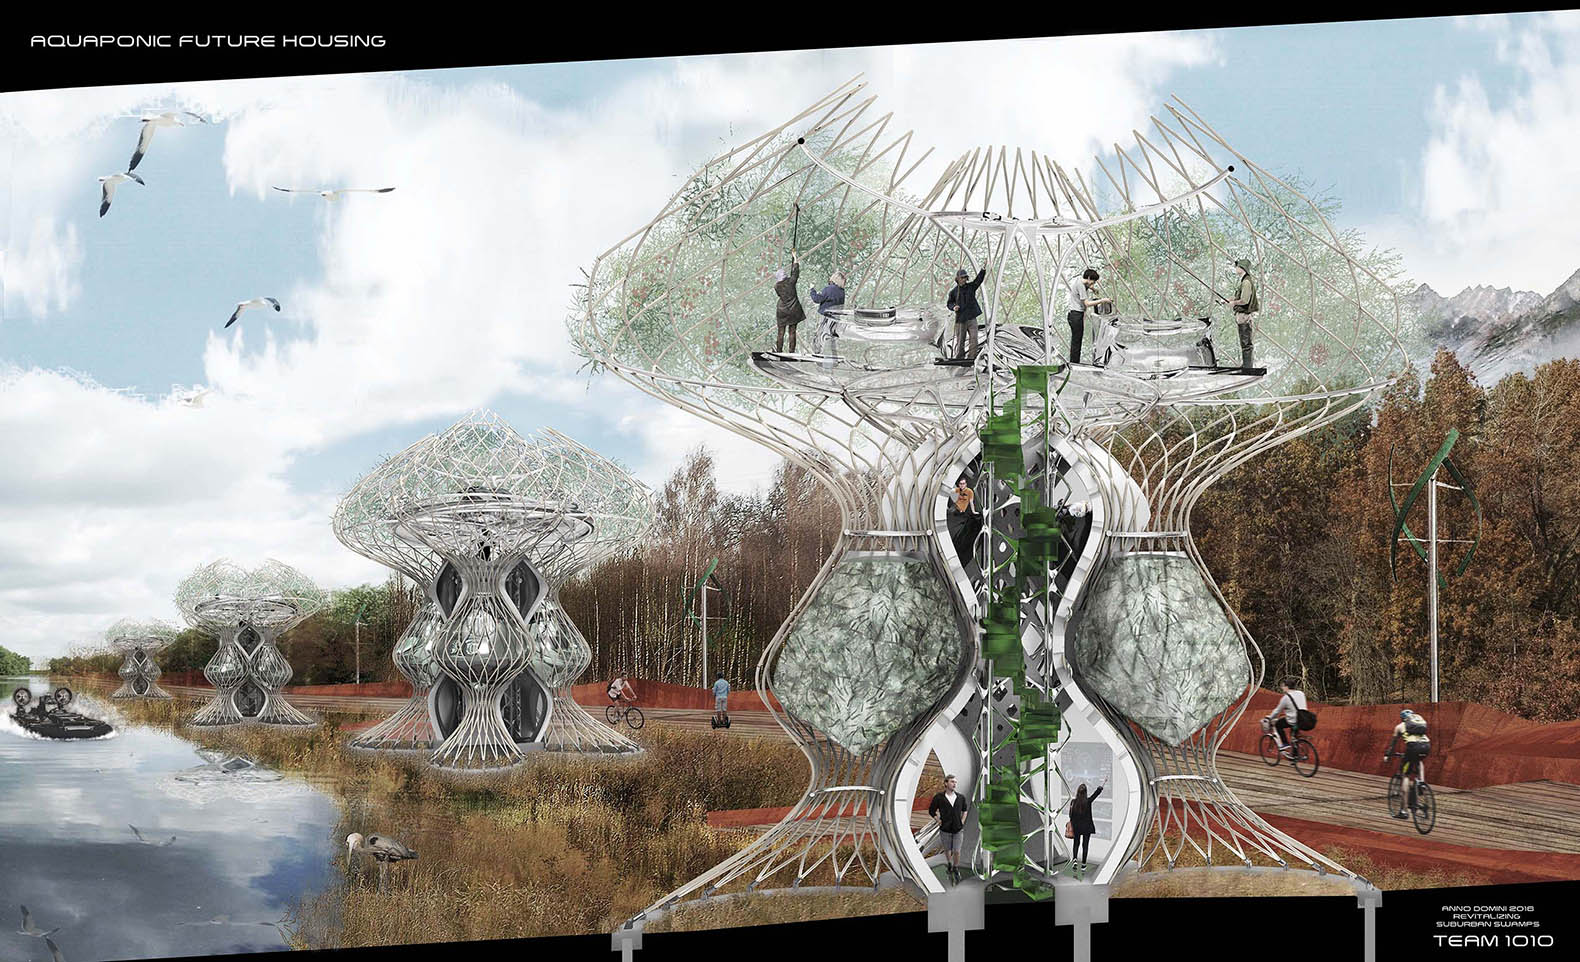 3D-printed Aquaponic Homes grow their own veggies and fish on home construction plans, home garden plans, home energy plans, home gardening plans, home architecture plans, home wheelchair scale less then 1000, home hydroponics plans, homemade hydroponics plans, home aquaculture systems, home landscaping plans, home solar plans, home aquaponic gardening, fish tank plans, home greenhouse plans, aquaponic basic plans,